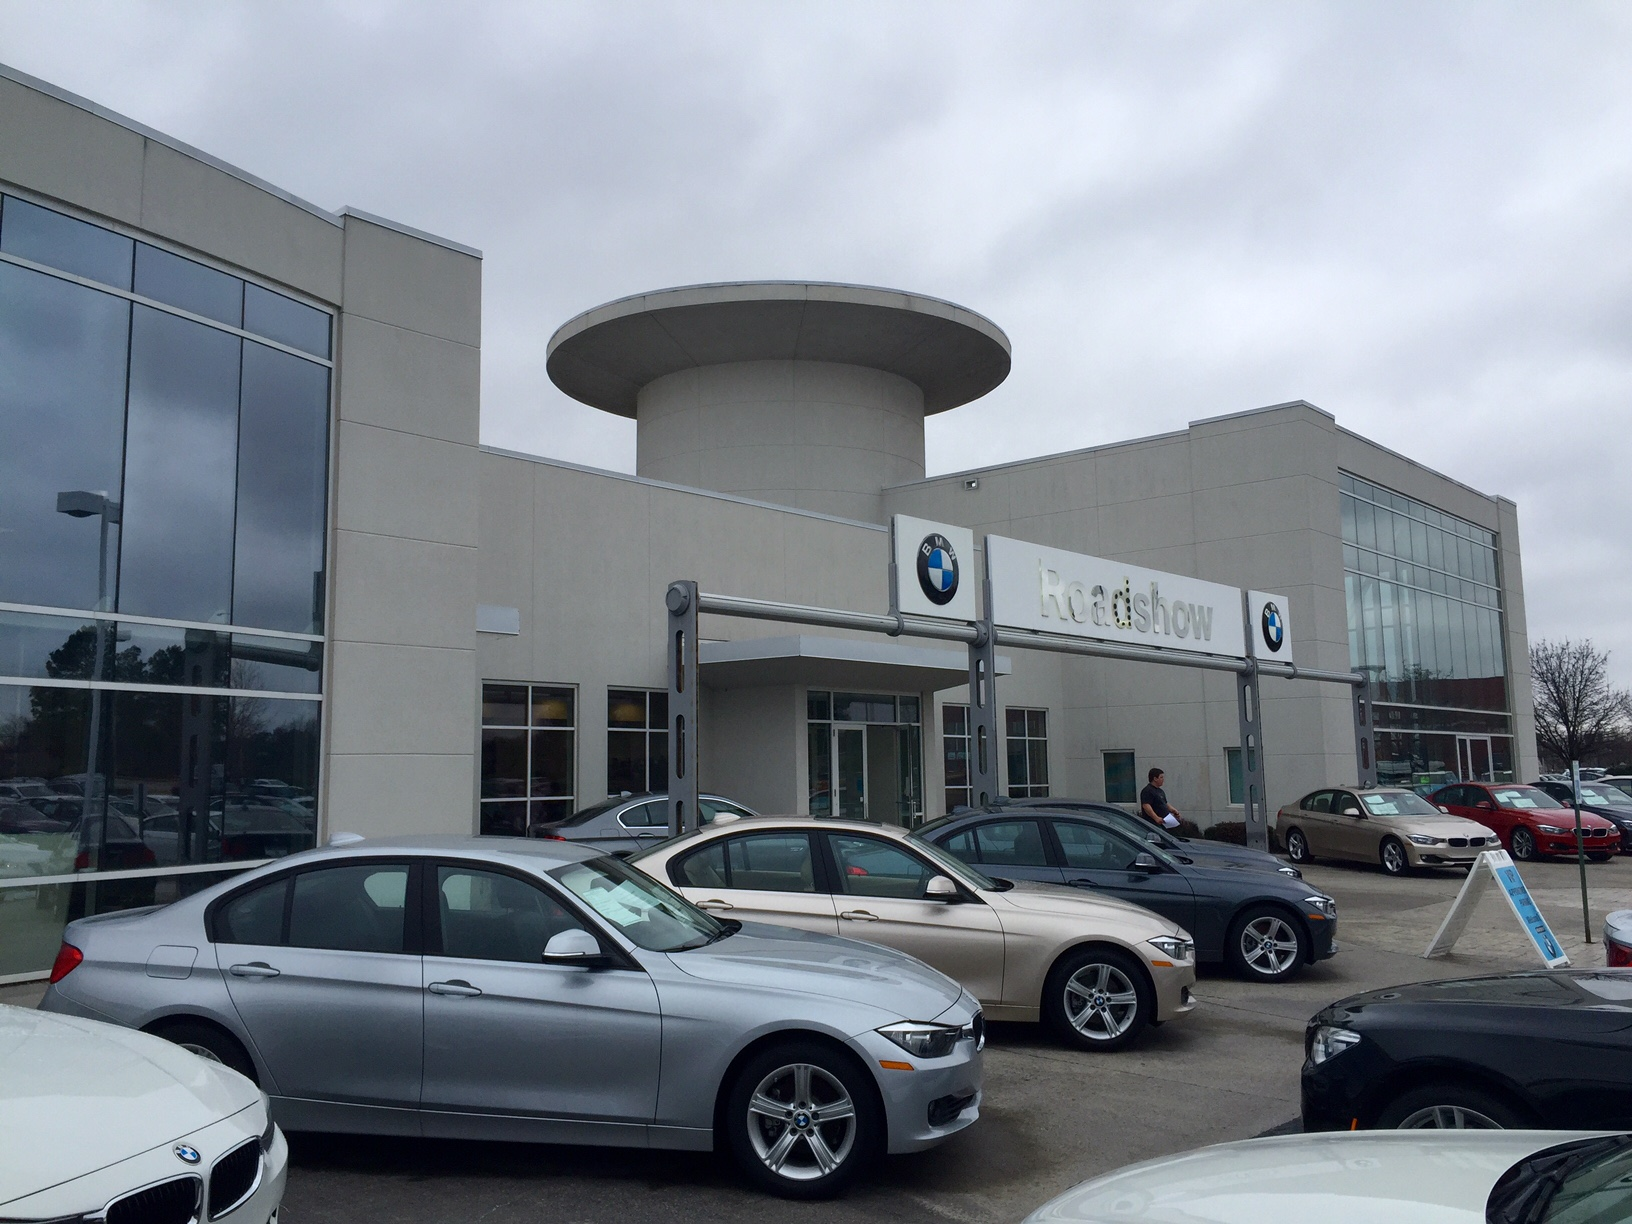 roadshow-bmw-mem.jpg